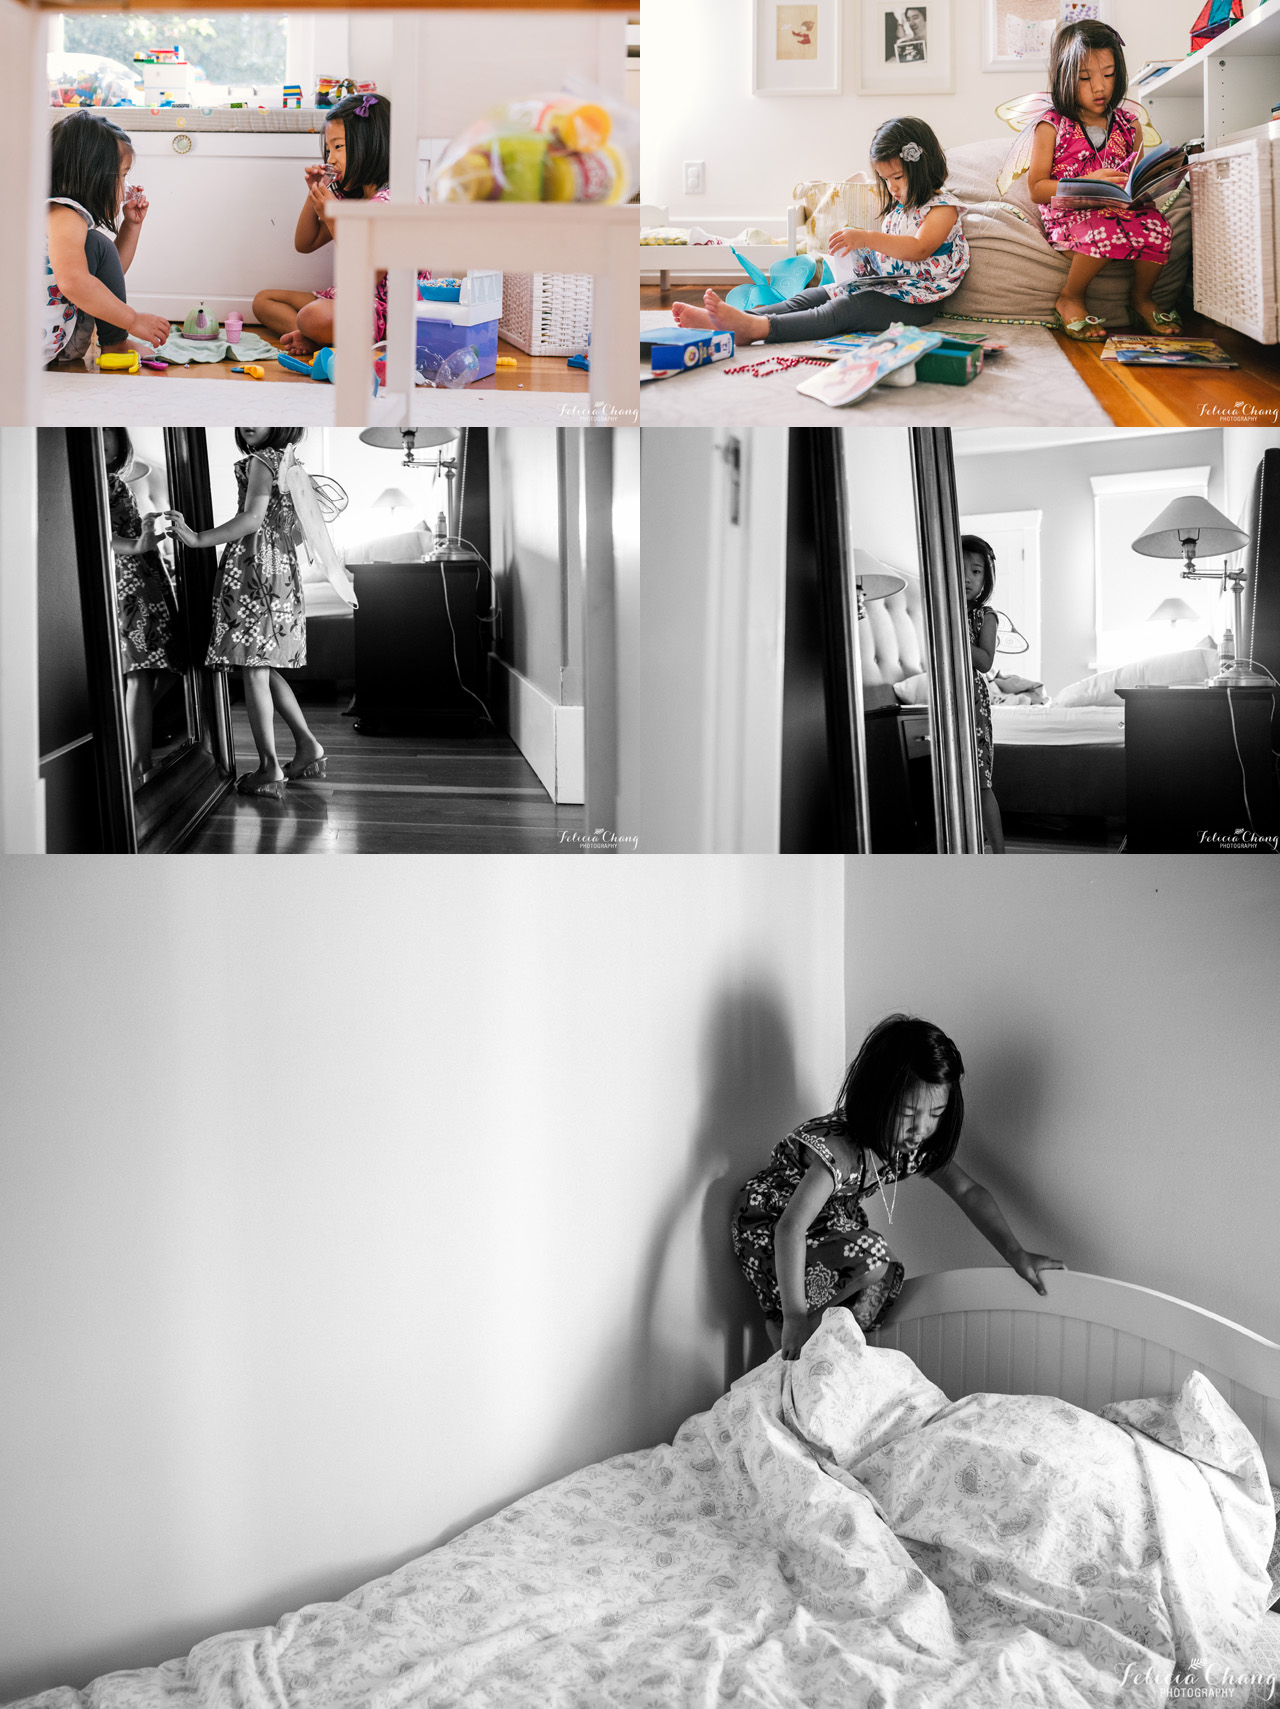 Morning playtime and chores |  Felicia Chang Photography